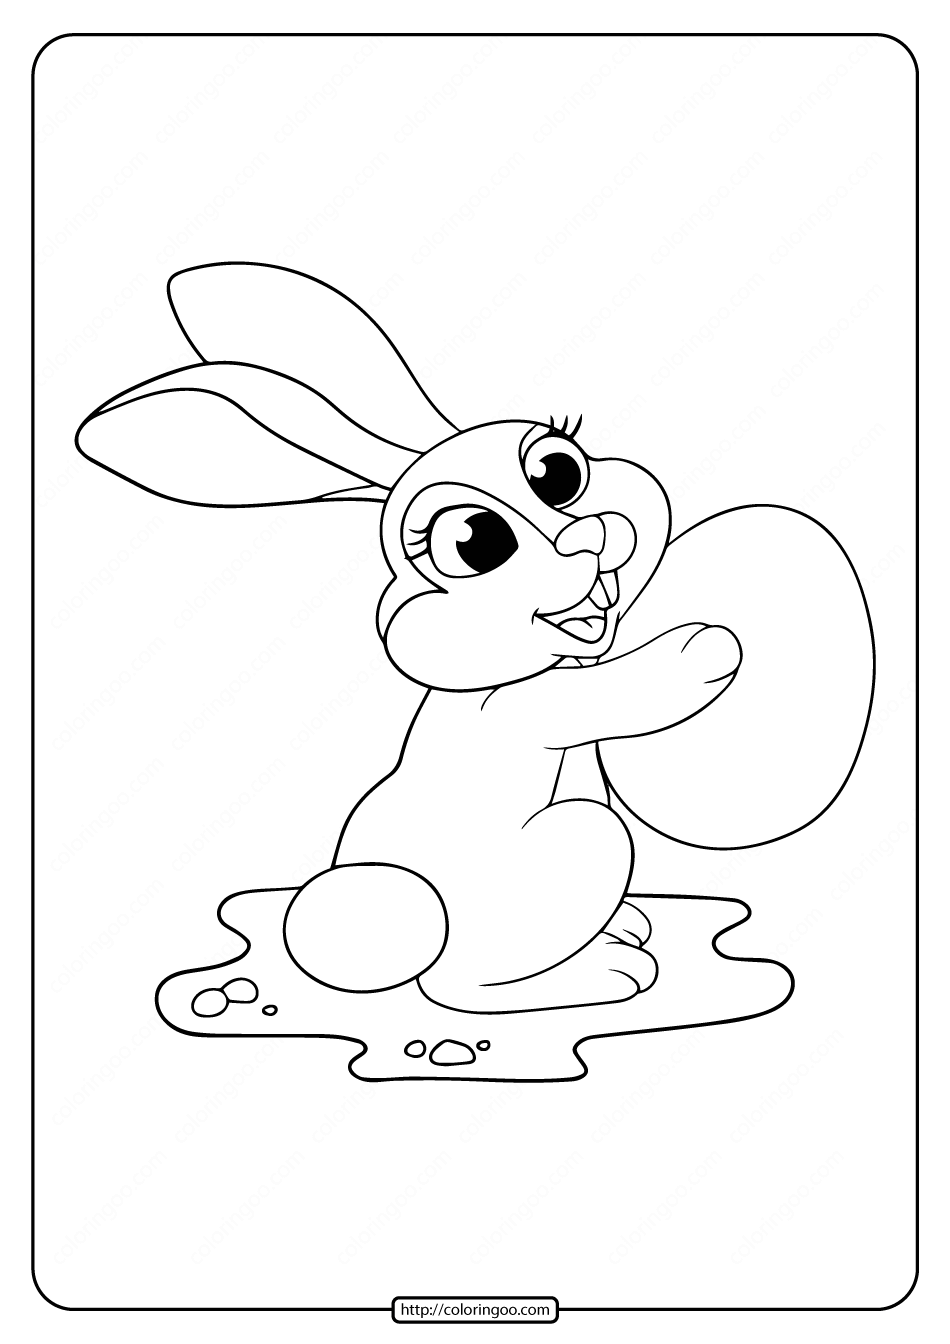 Printable Big Easter Egg Rabbit Coloring Pages